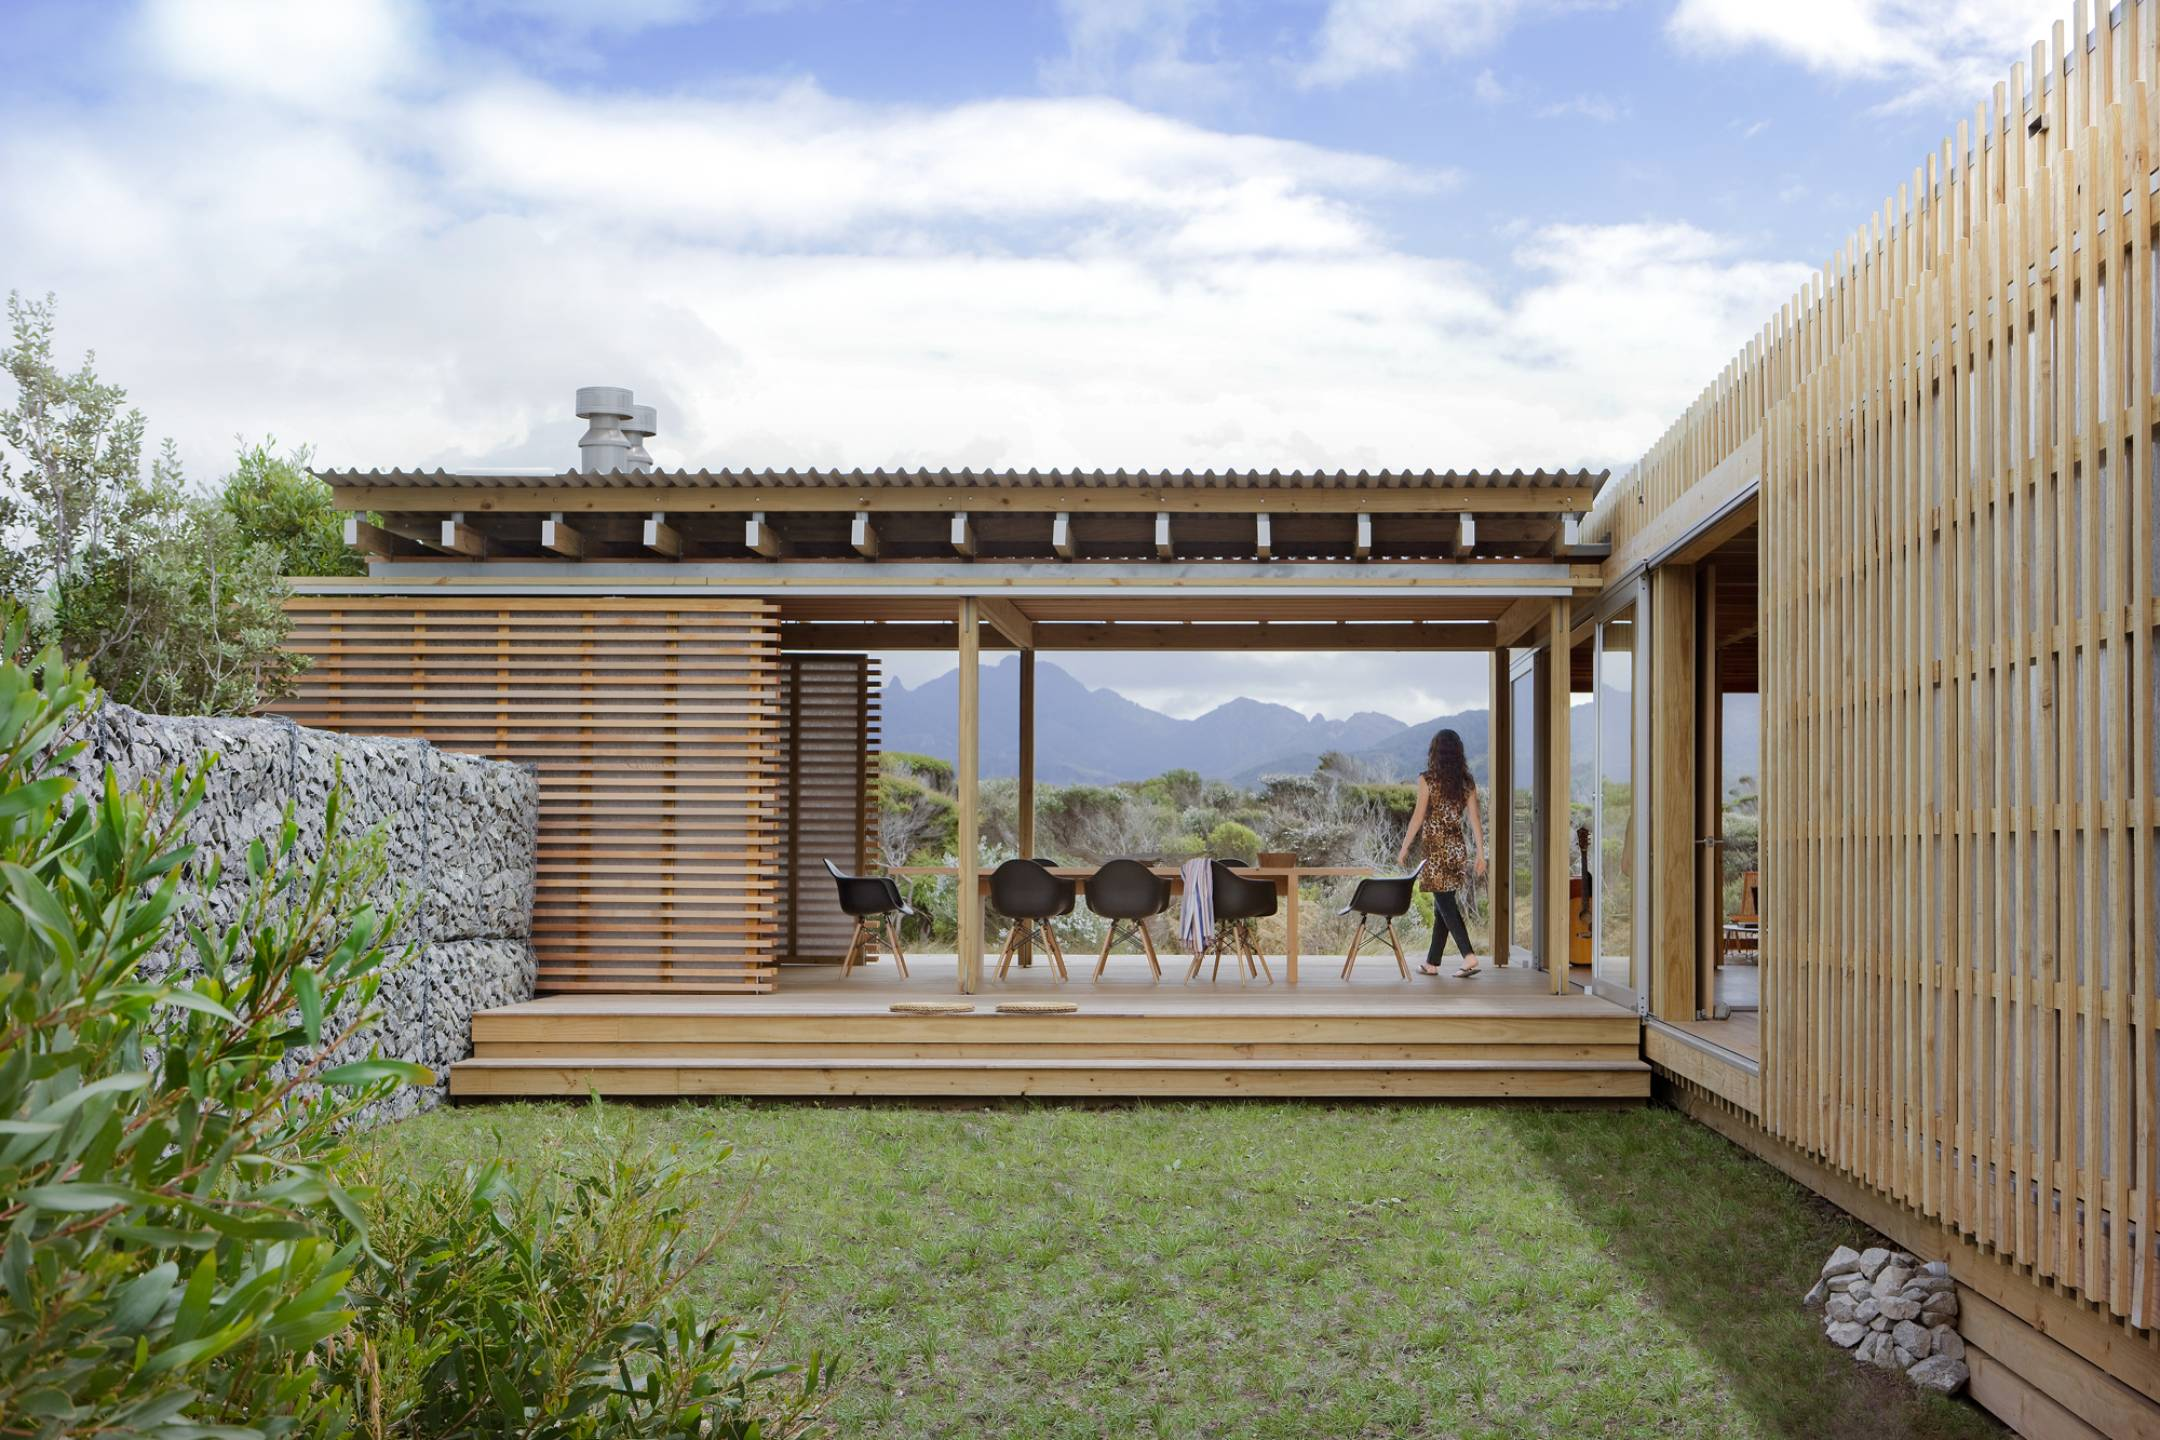 Kaitoke bach herbst architects for Beach bach designs